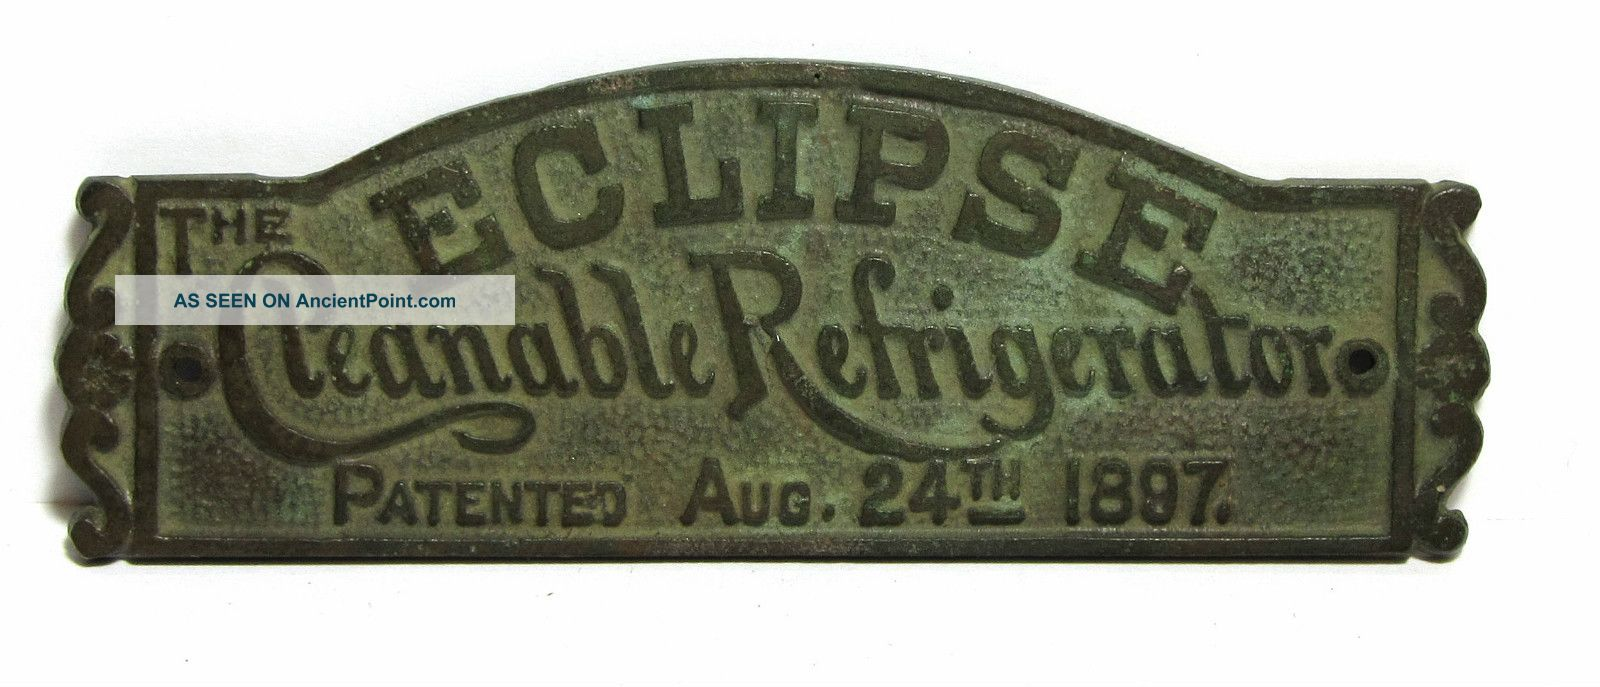 Great Antique The Eclipse Cleanable Refrigerator Aug 24th 1897 Brass Plaque Ice Boxes photo